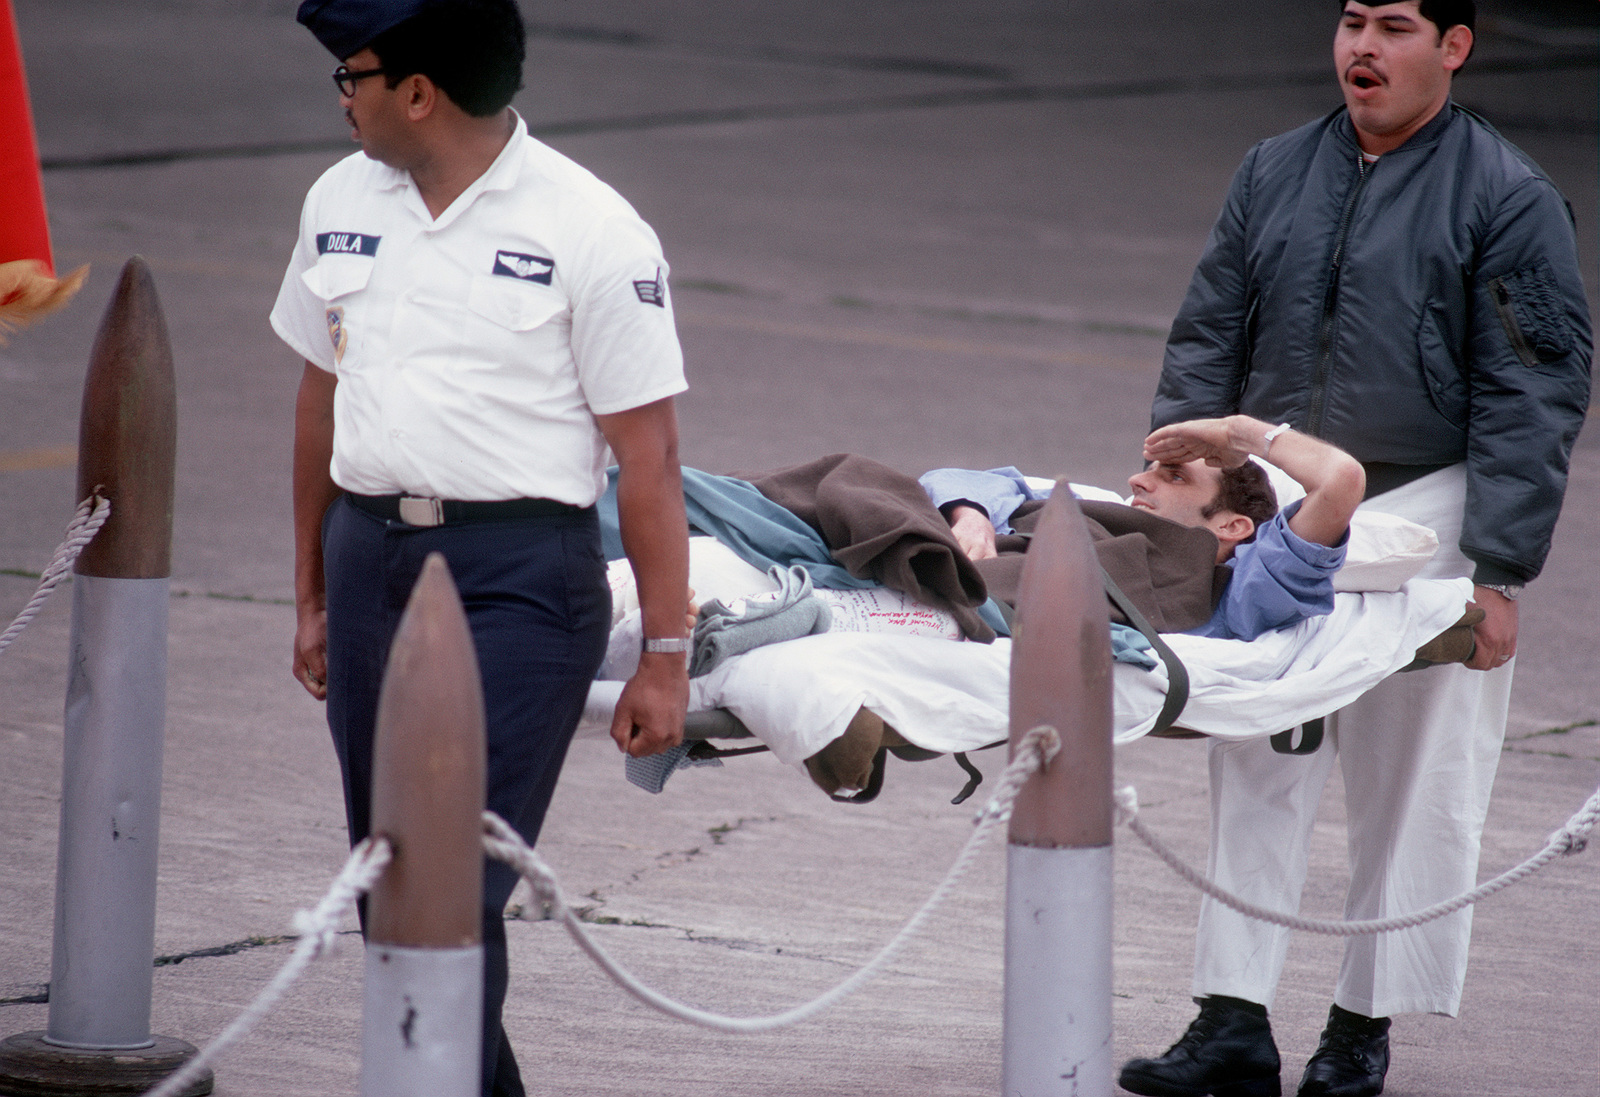 Former POW and U.S. Air Force TSGT James R. Cook salutes the colors from his stretcher as he is carried from the C-141 aircraft. TSGT Cook was captured on 21 Dec 72 and released by the North Vietnamese in Hanoi 12 Feb 73